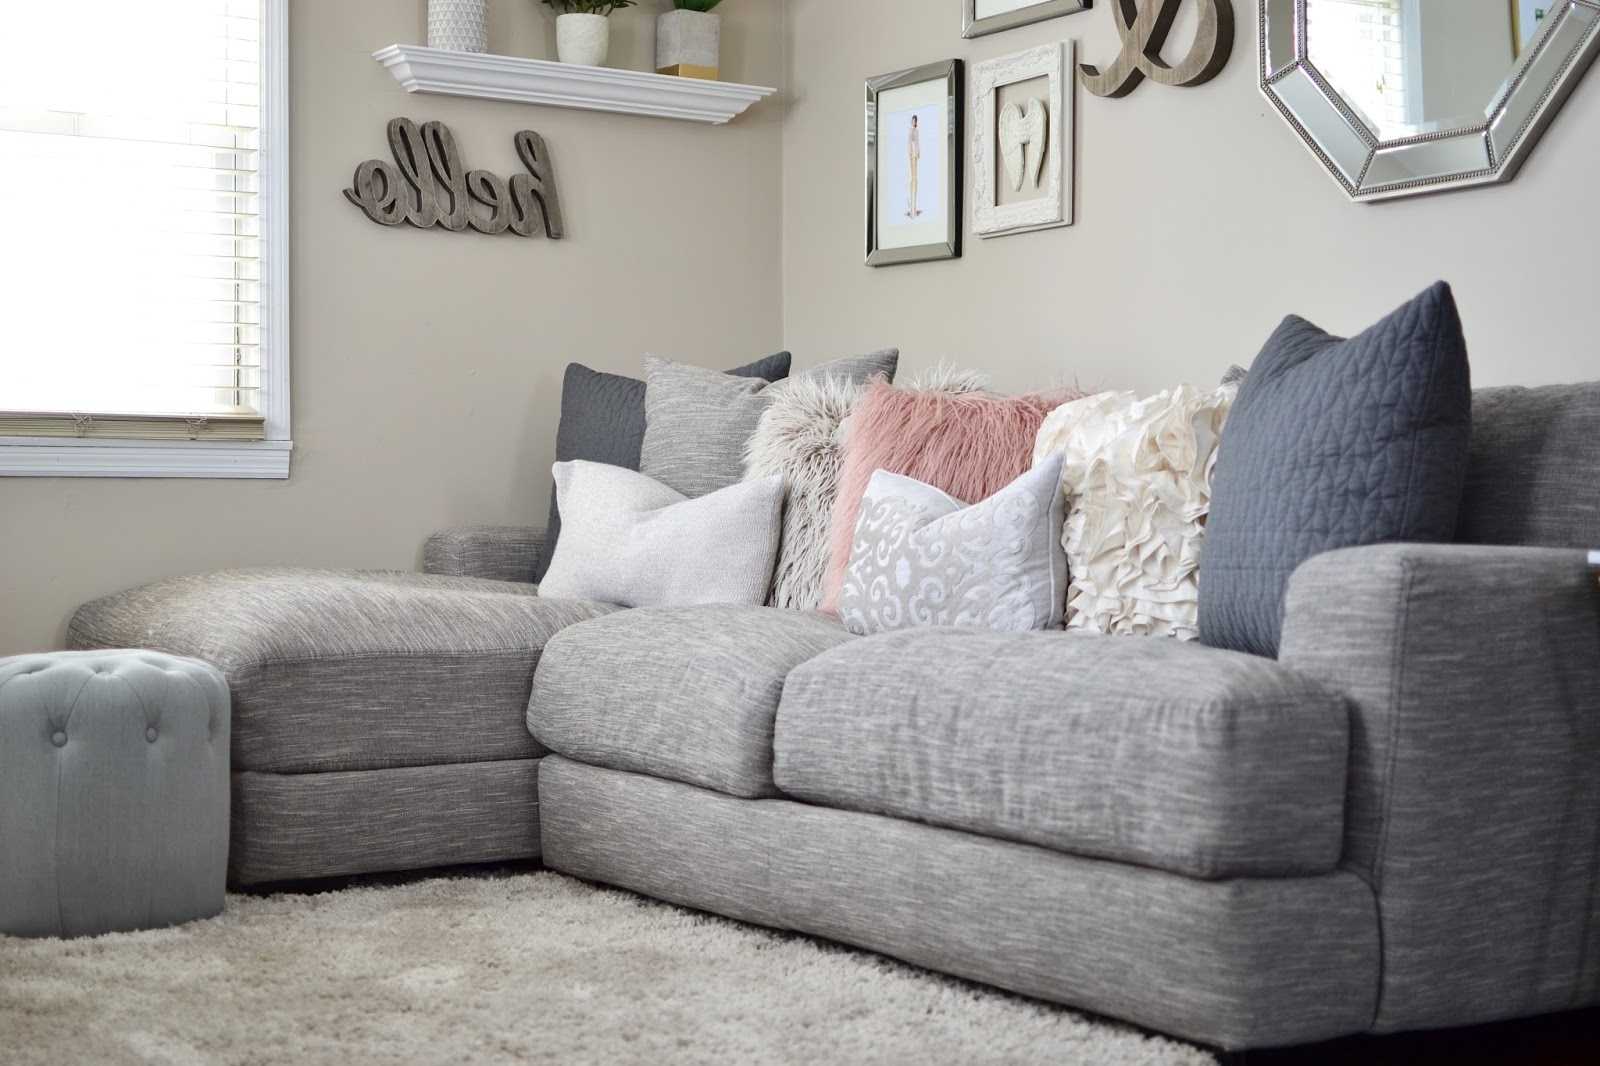 Widely Used Sectional Sofas At Raymour And Flanigan Pertaining To Our Living Room Tour (View 20 of 20)